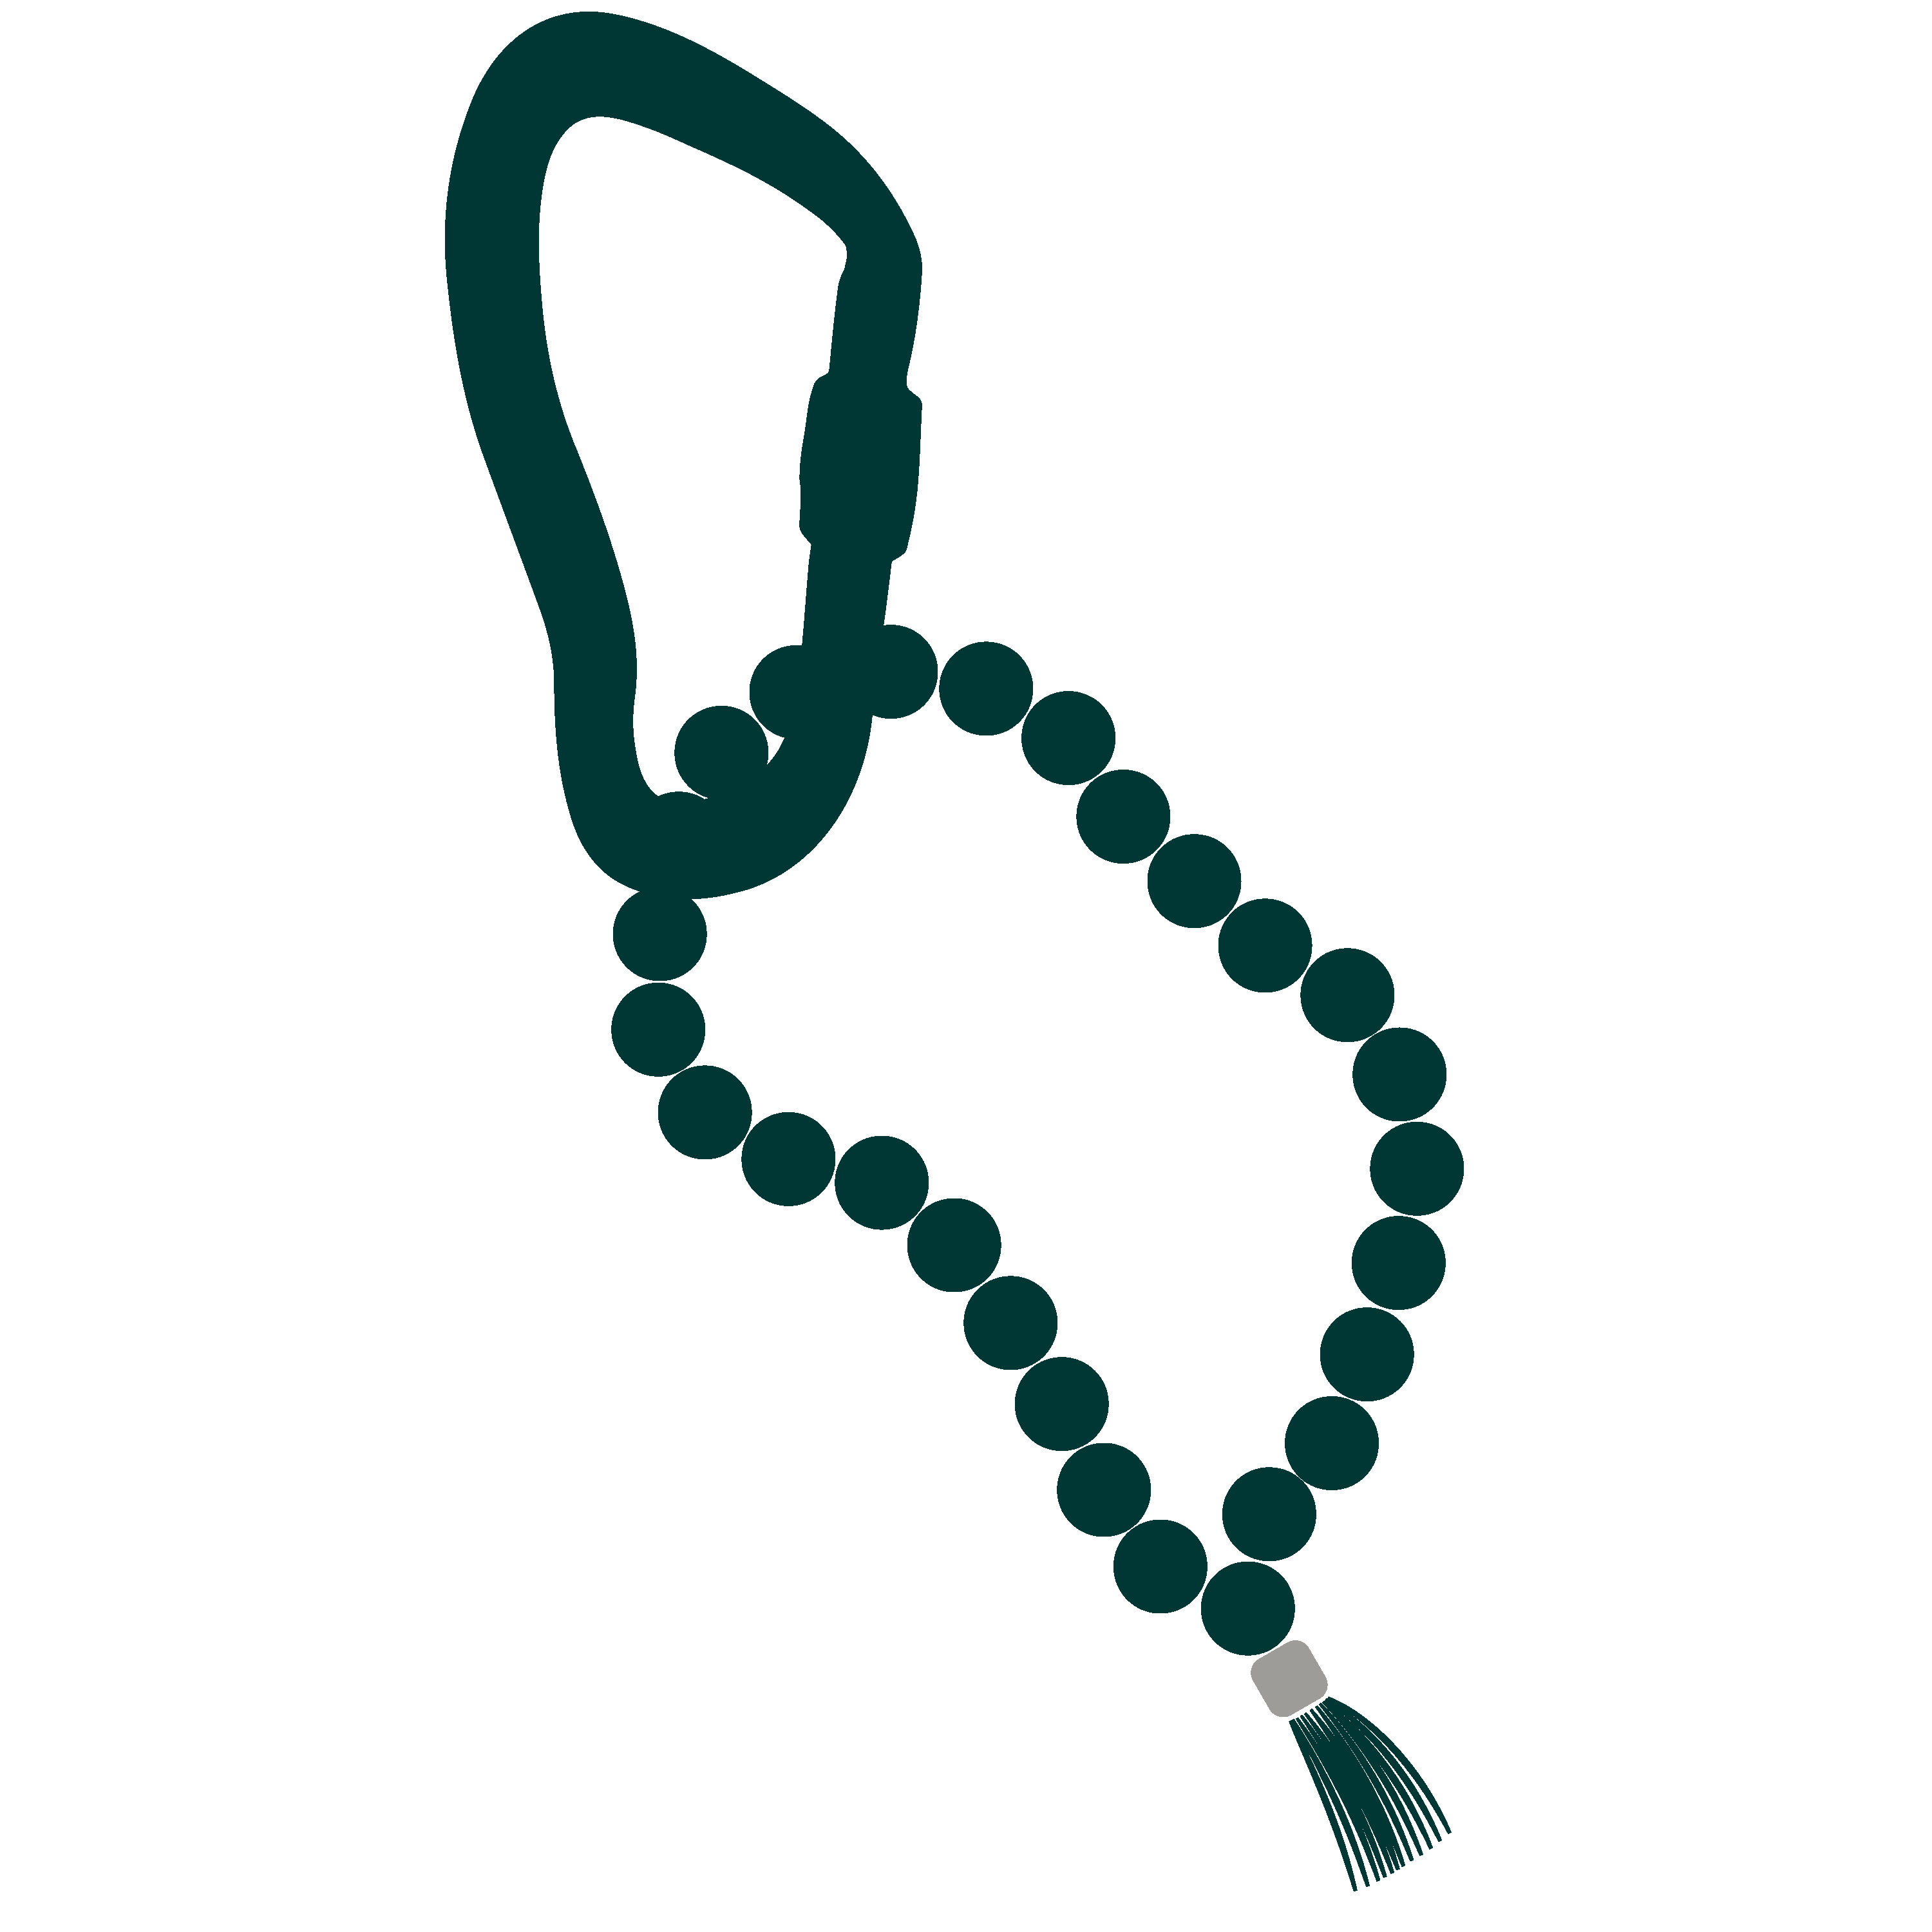 Carabiner-+-Mala-Beads-Green-and-Green